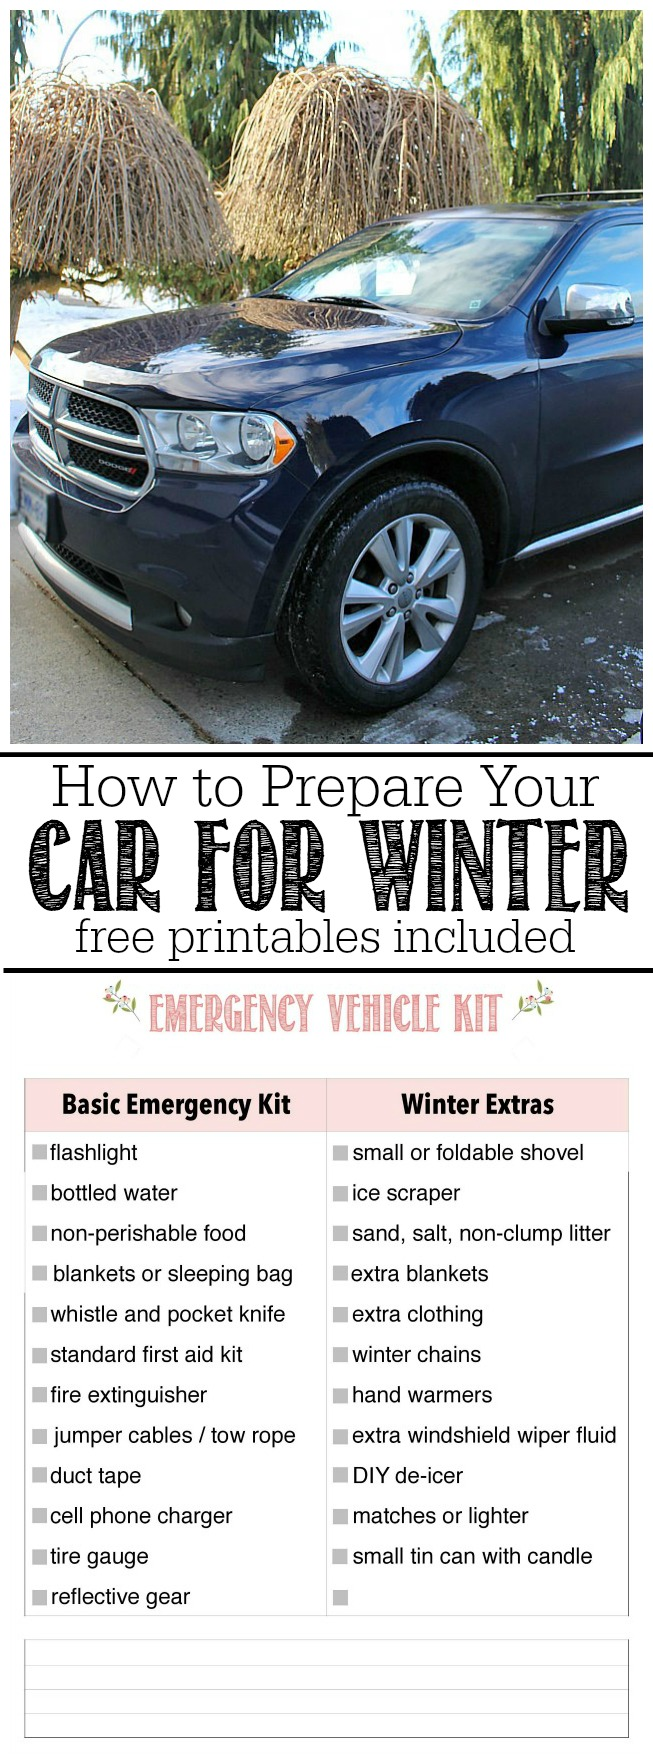 How to prepare an emergency kit for your care and prepare your car for winter driving. Stay safe! Free printables for family binder included.